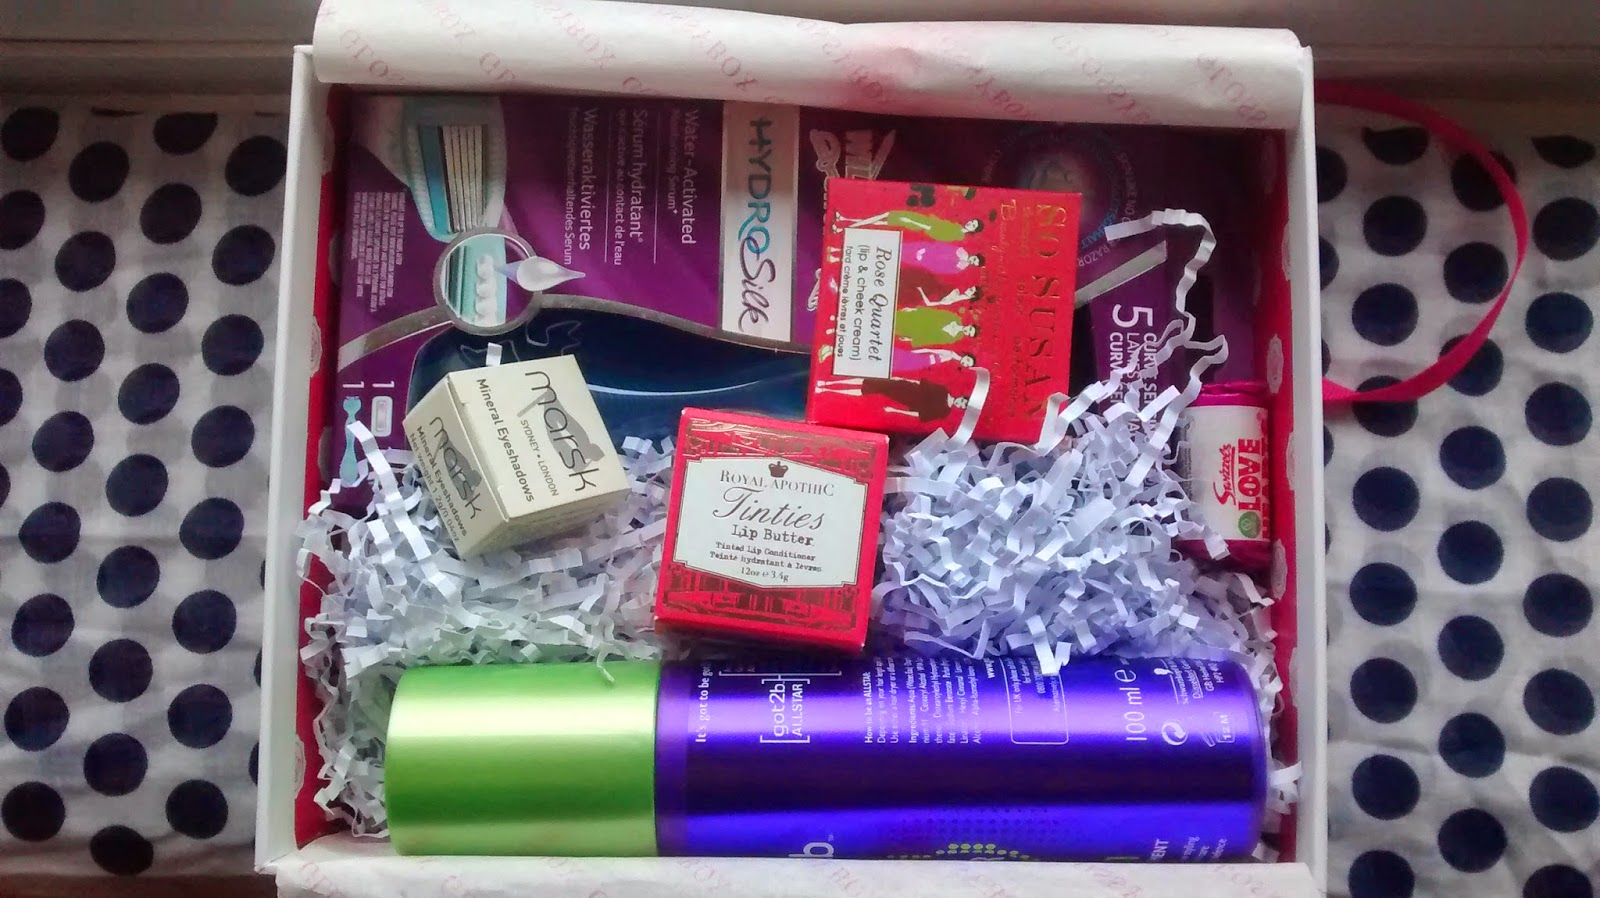 February Glossybox Contents